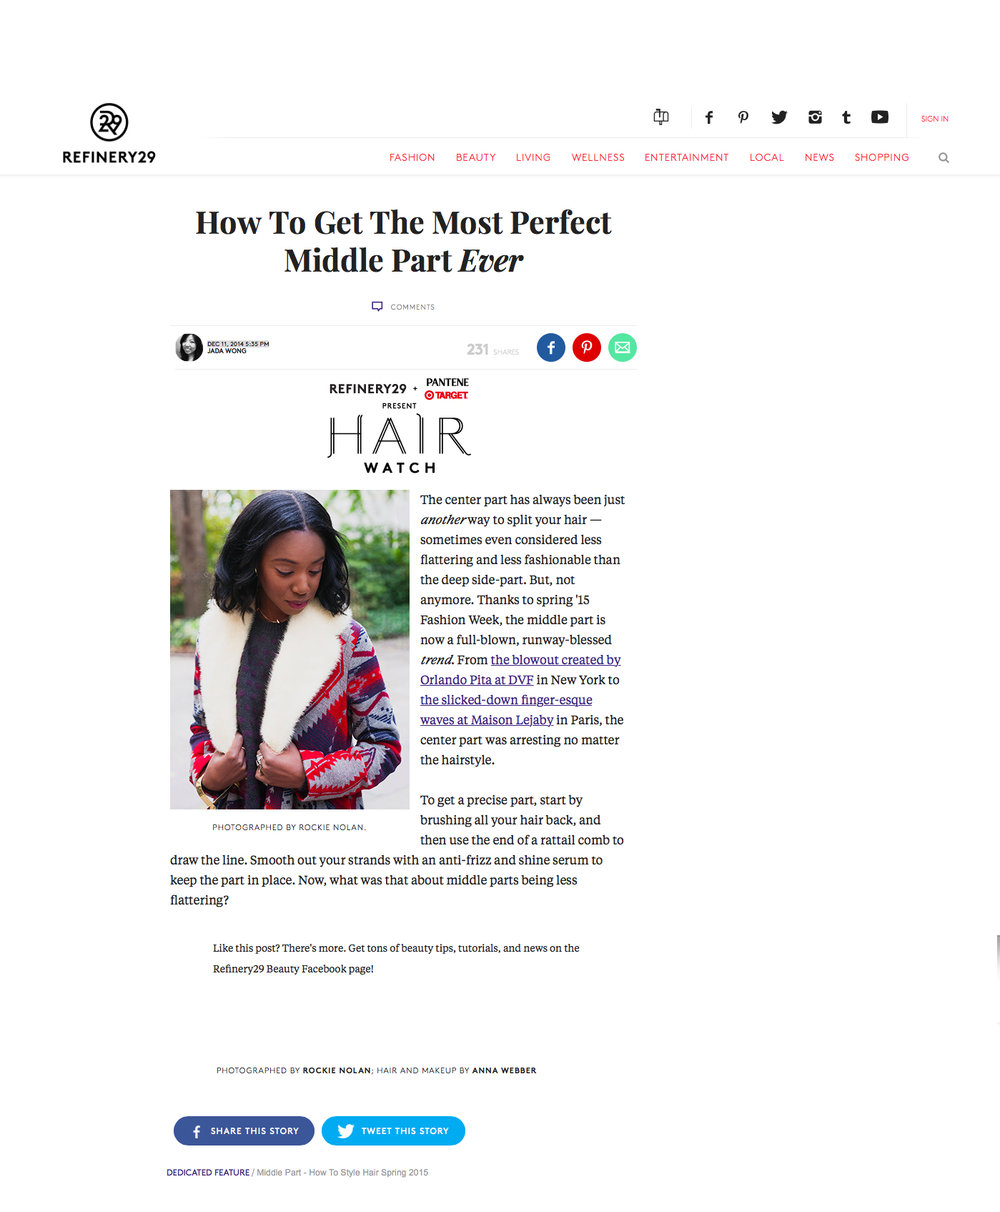 Refinery29.com - 12.11.14 - How To Get The Most Perfect Middle Part Ever.jpg